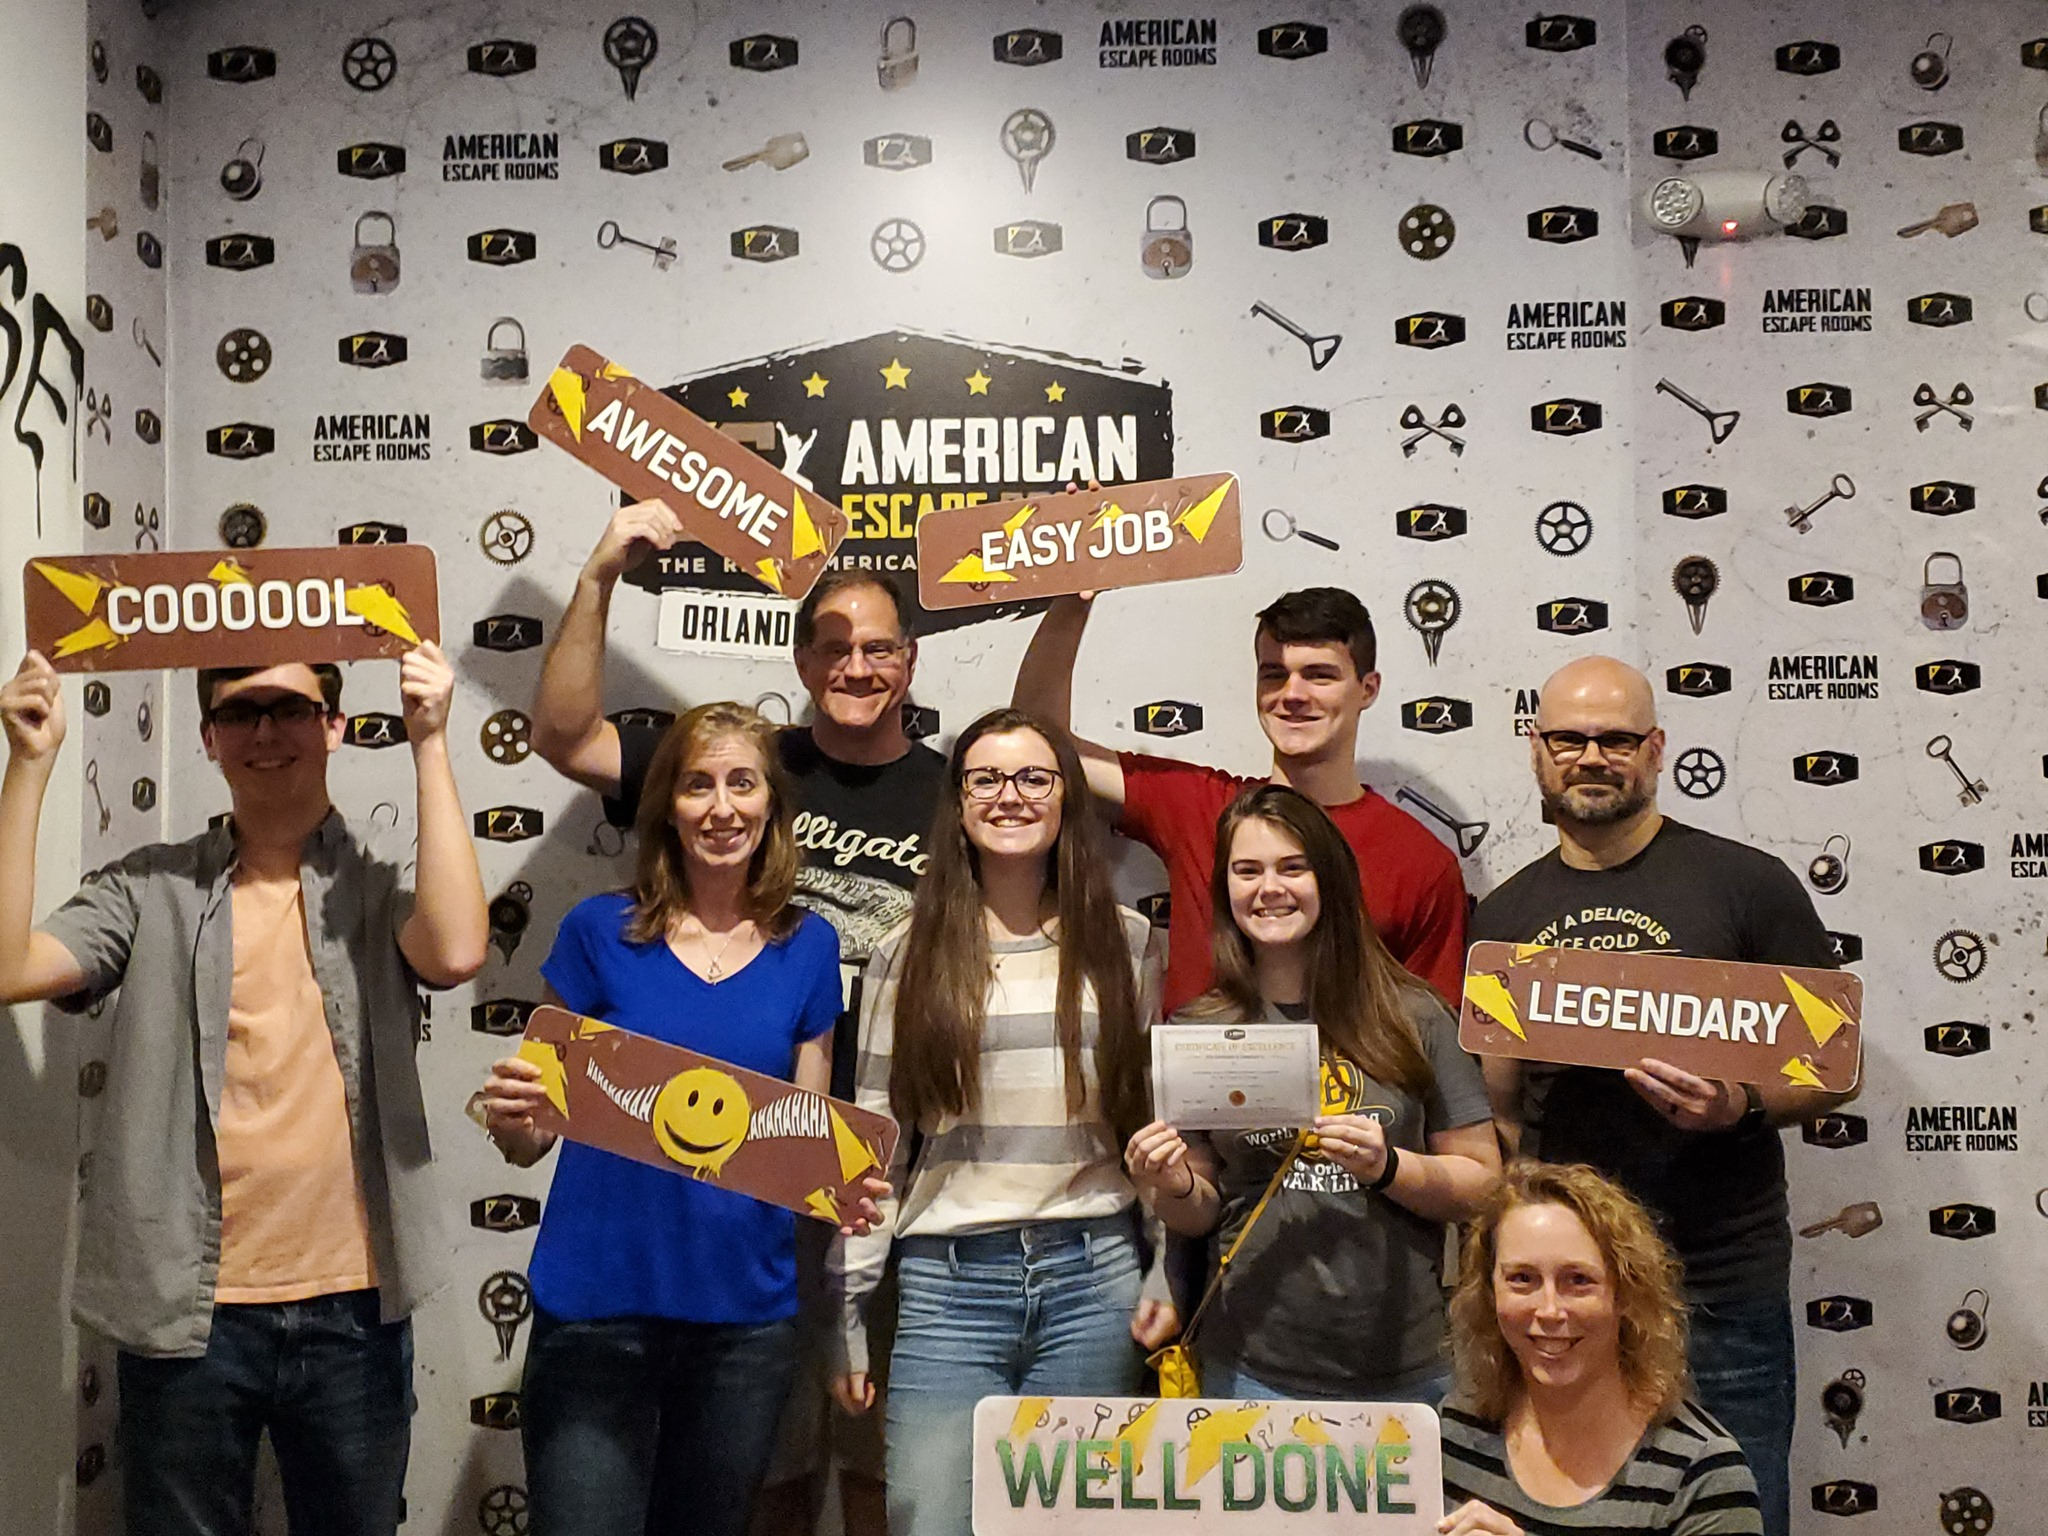 Team T^2 played the Mind-Boggling - Orlando and finished the game with 19 minutes 48 seconds left. Congratulations! Well done!